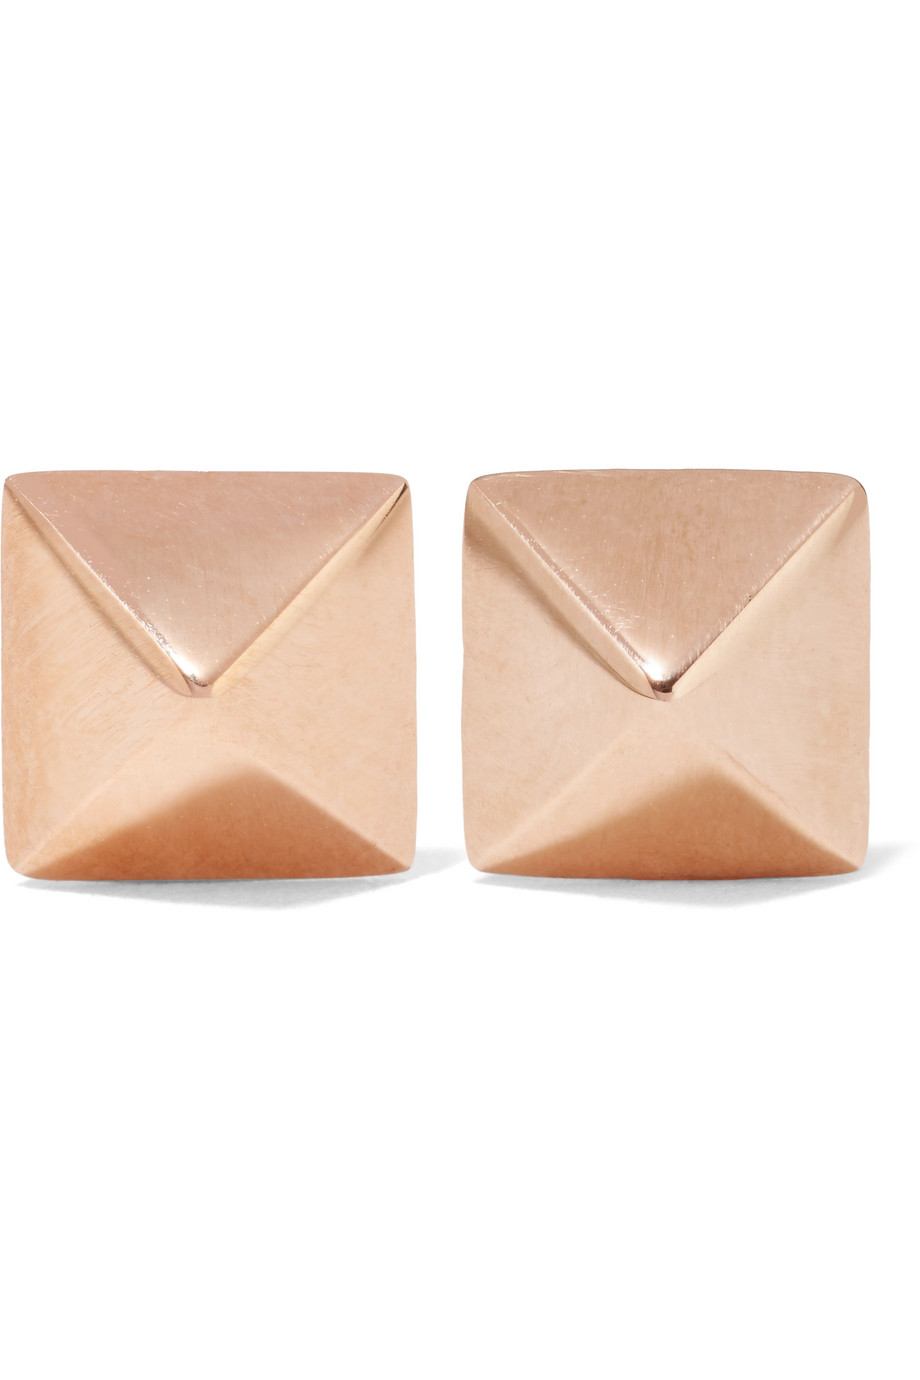 Anita Ko Spike 14-Karat Rose Gold Earrings, Women's